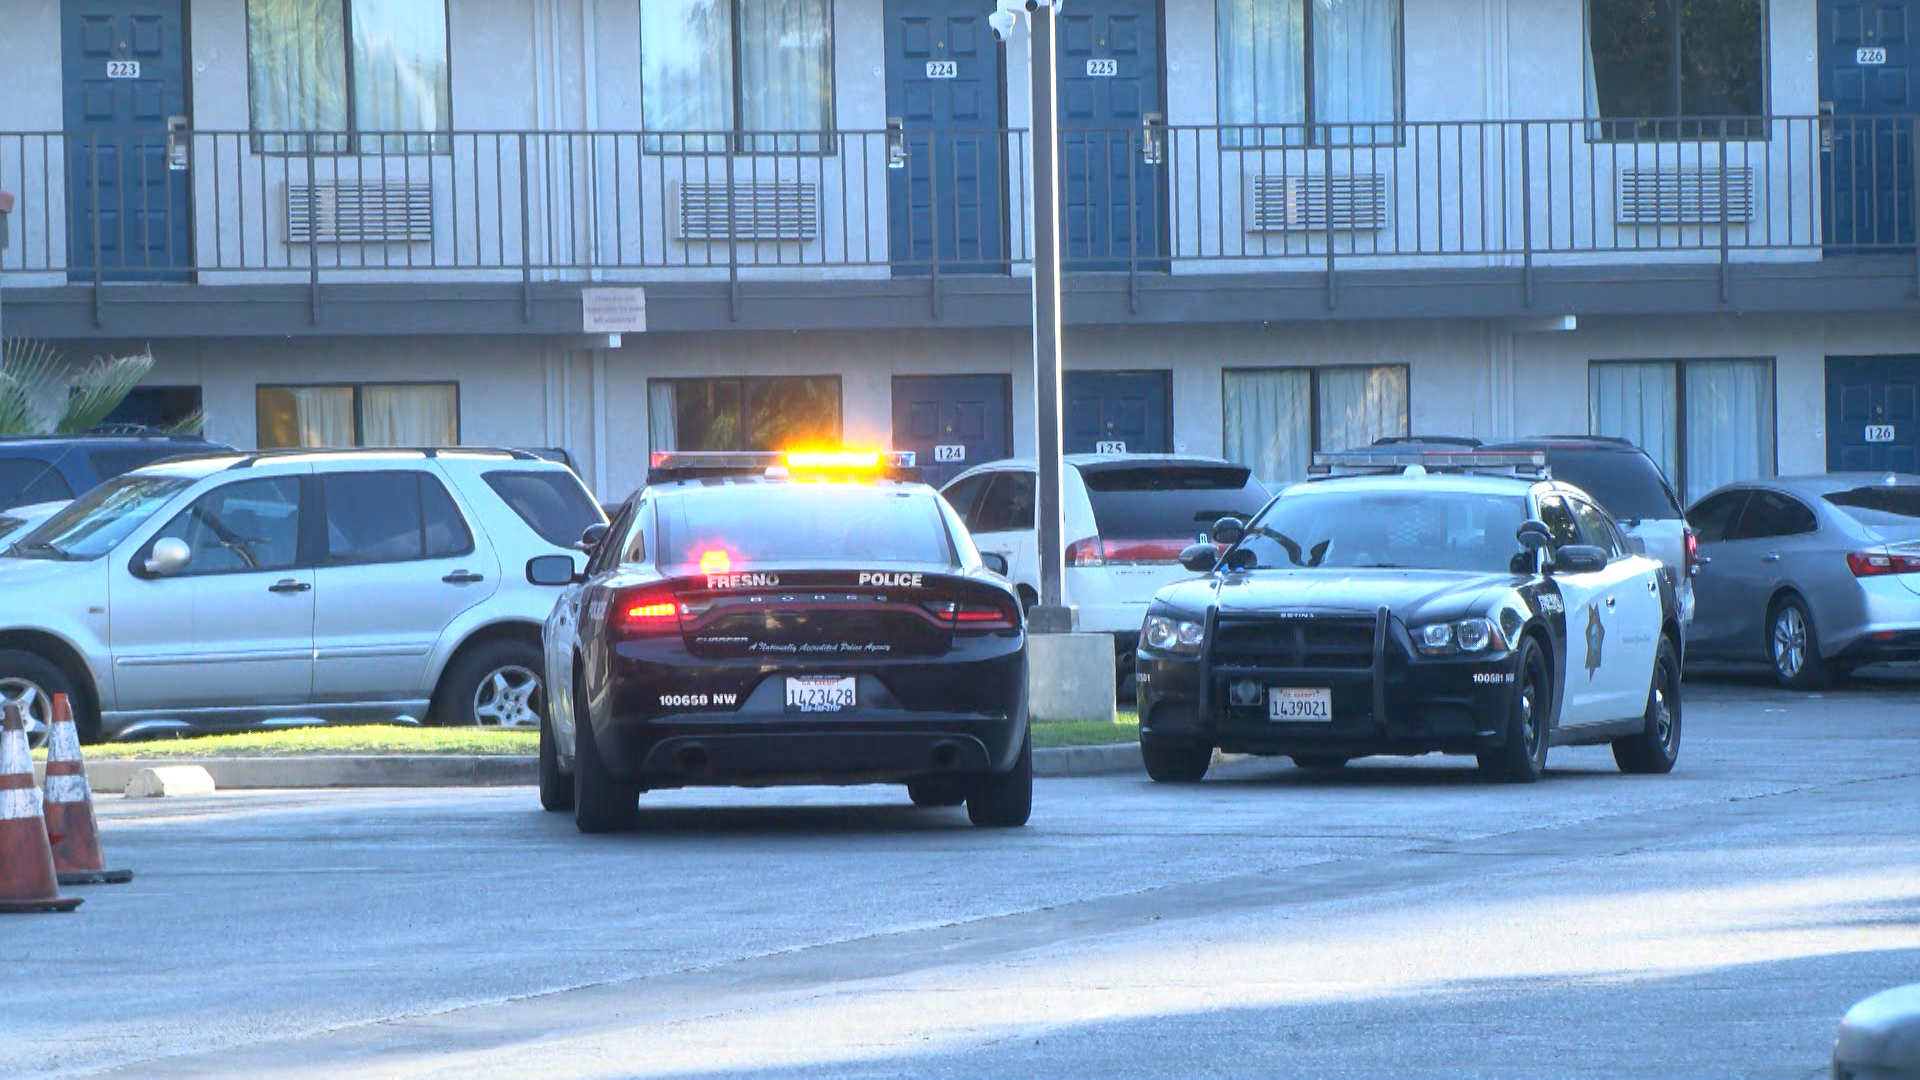 2 injured in Fresno shooting, victims ran into separate motels, police say